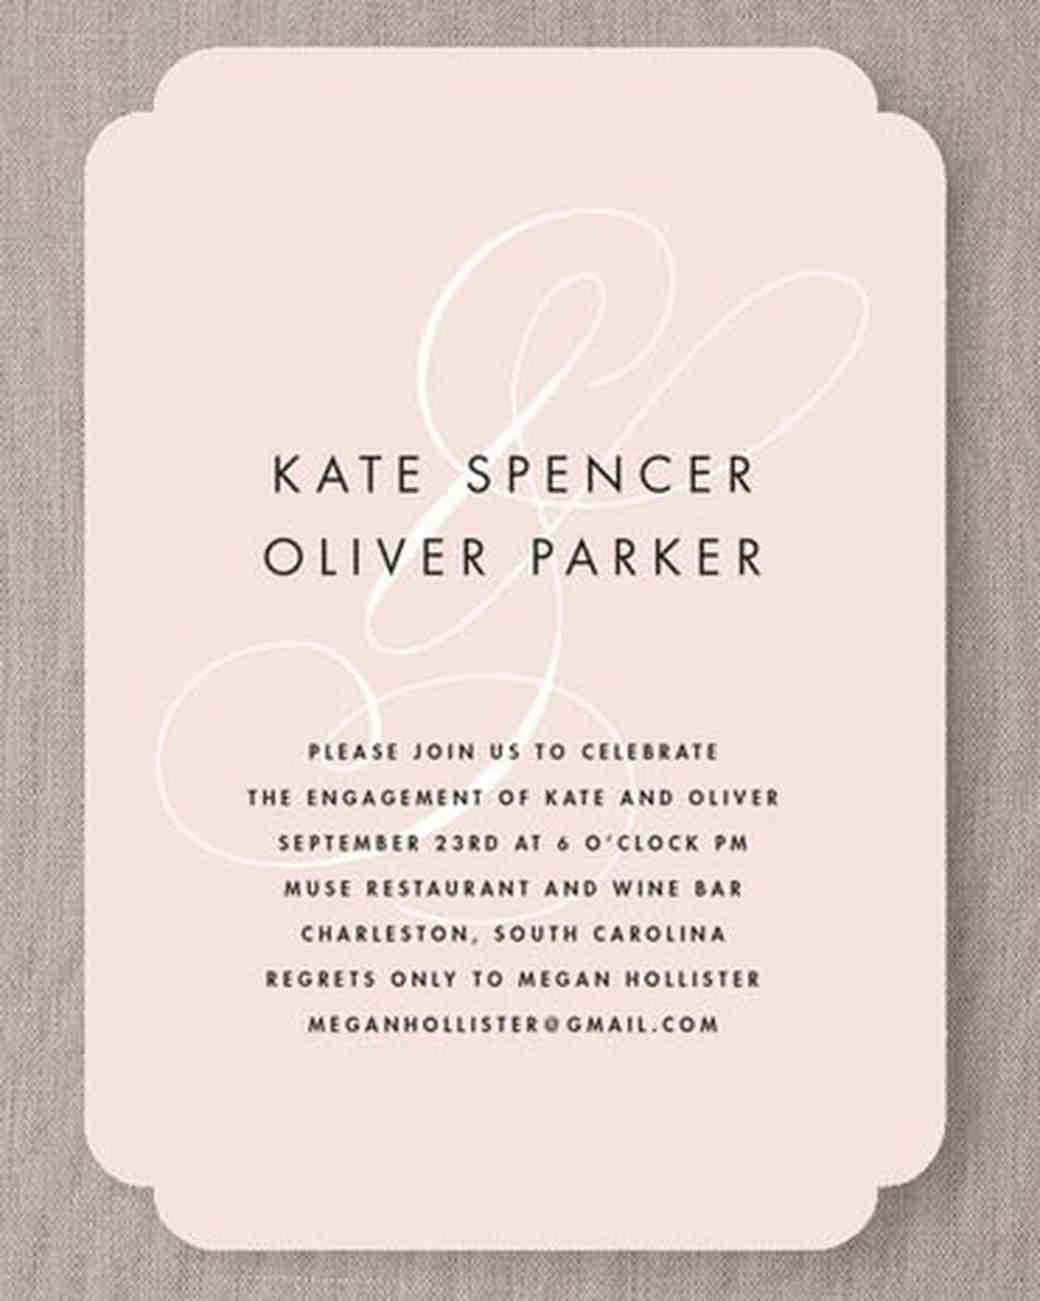 Engagement party invitations gangcraft engagement party invitations martha stewart weddings party invitations stopboris